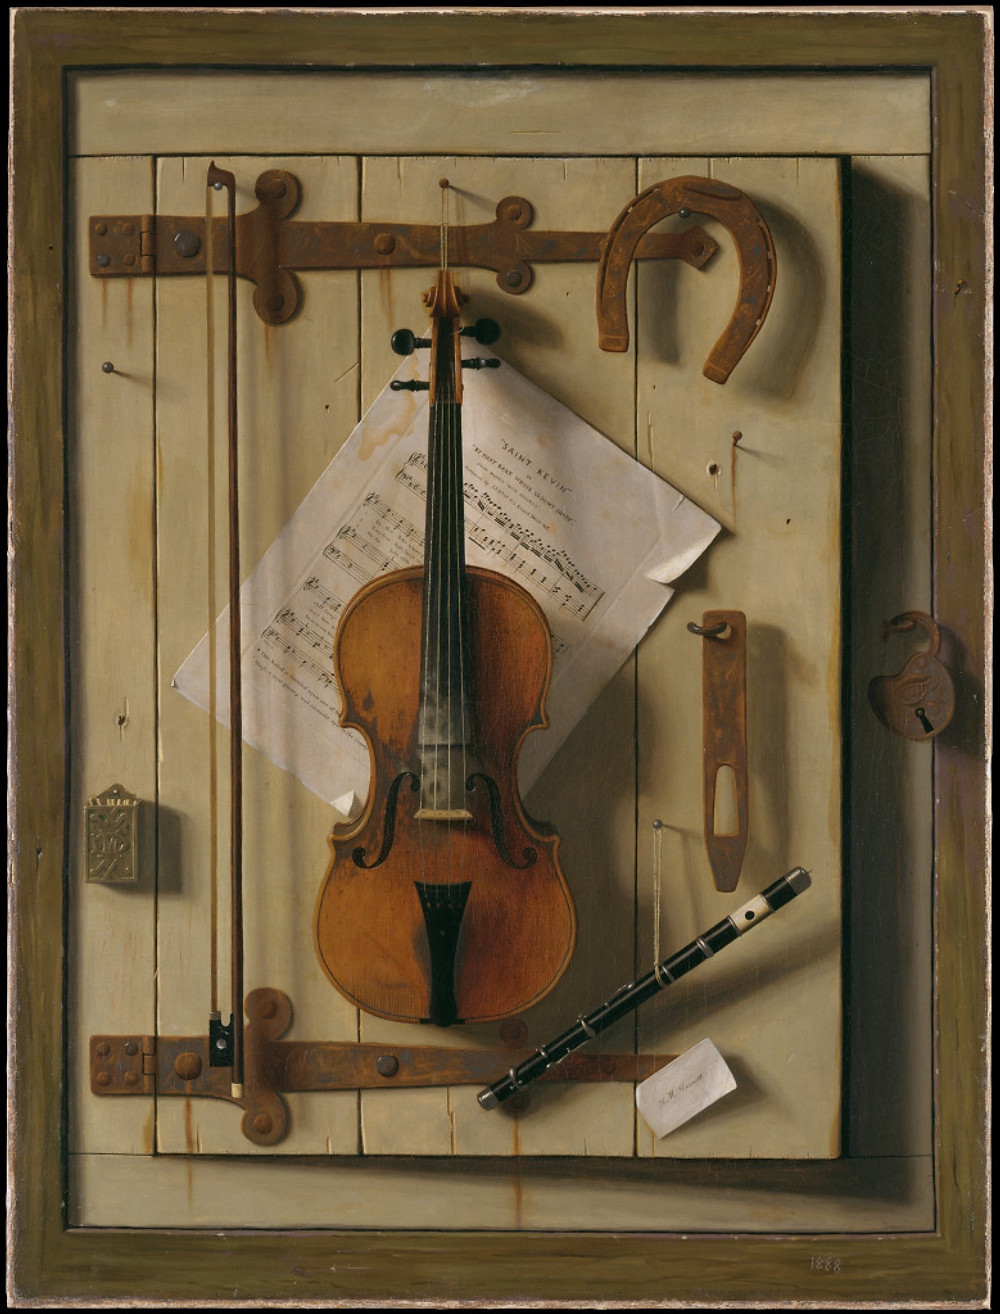 Violin and Music by William Michael Harnett, 1888